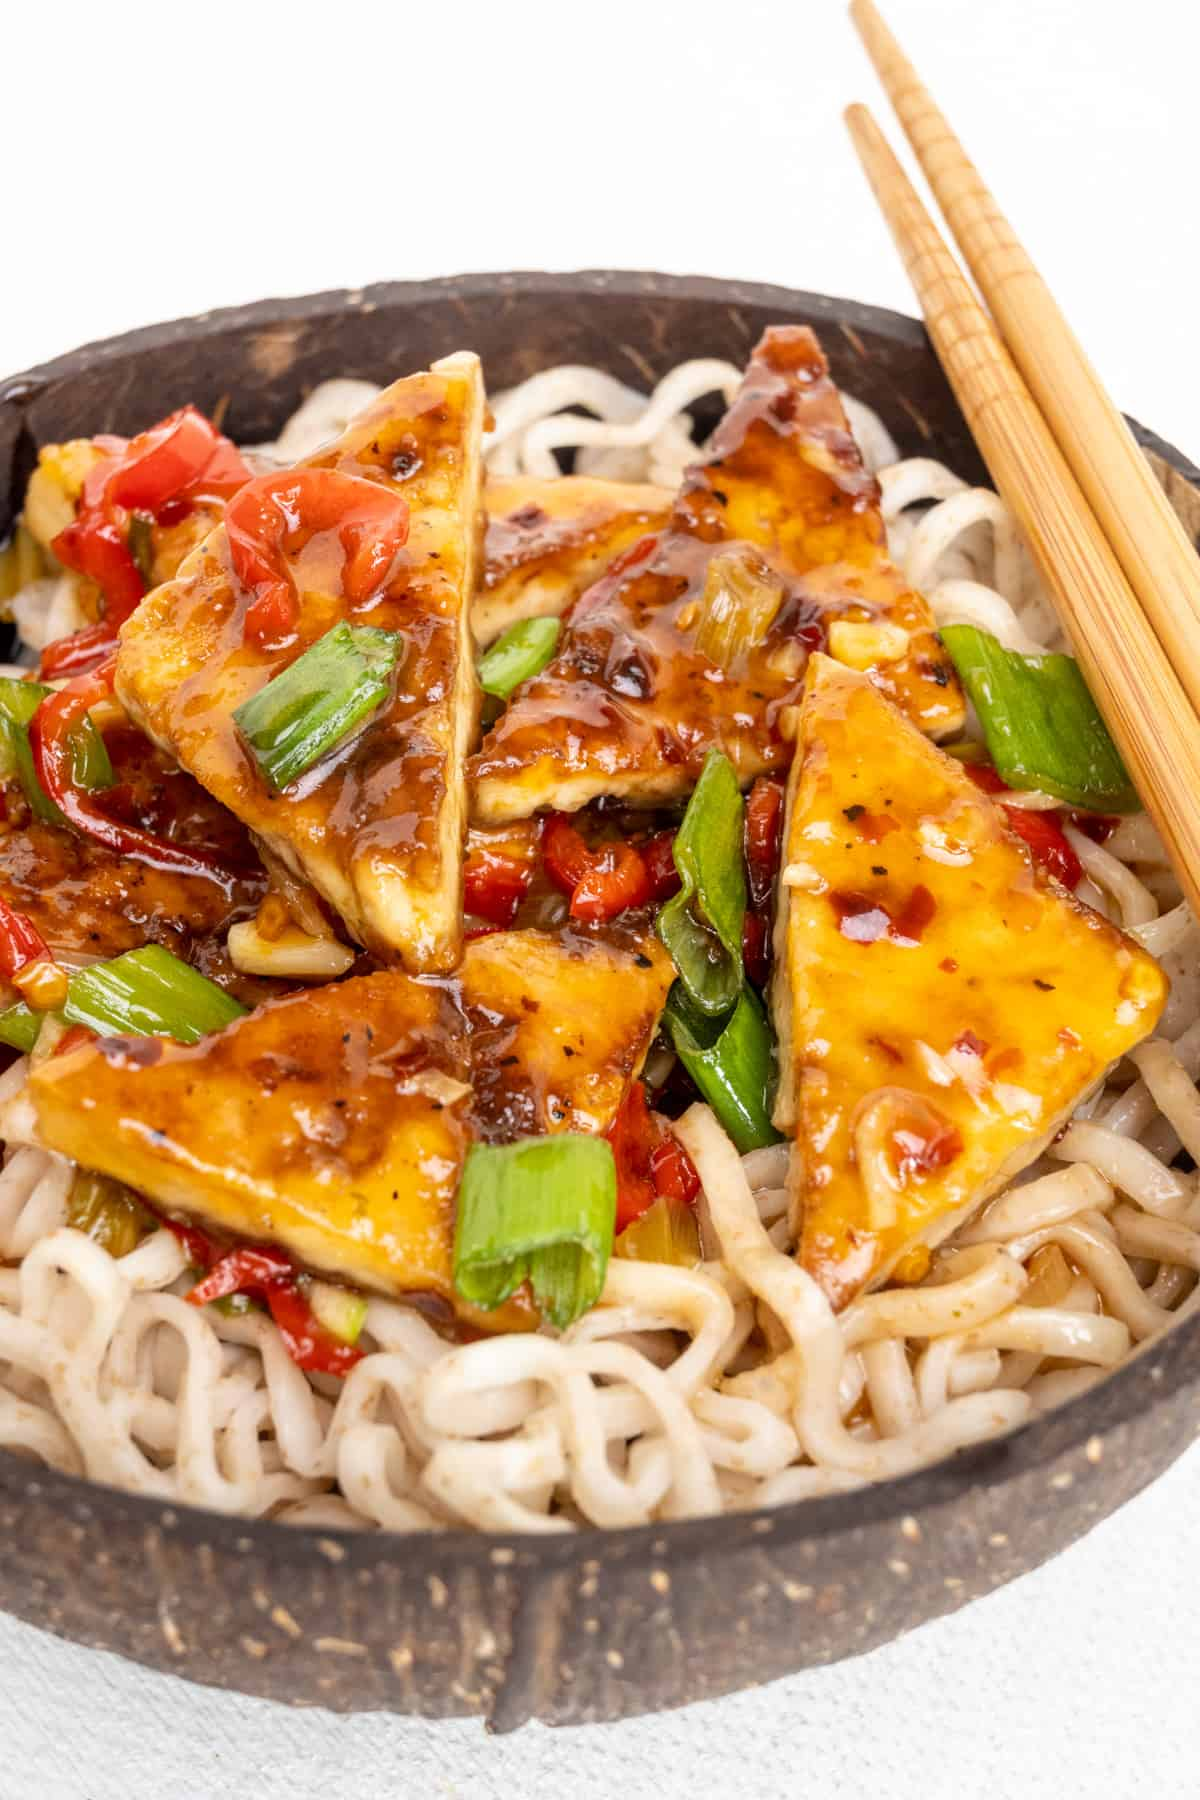 Noodles topped with fried tofu pieces covered in sweet chilli sauce in a bowl with chopsticks.